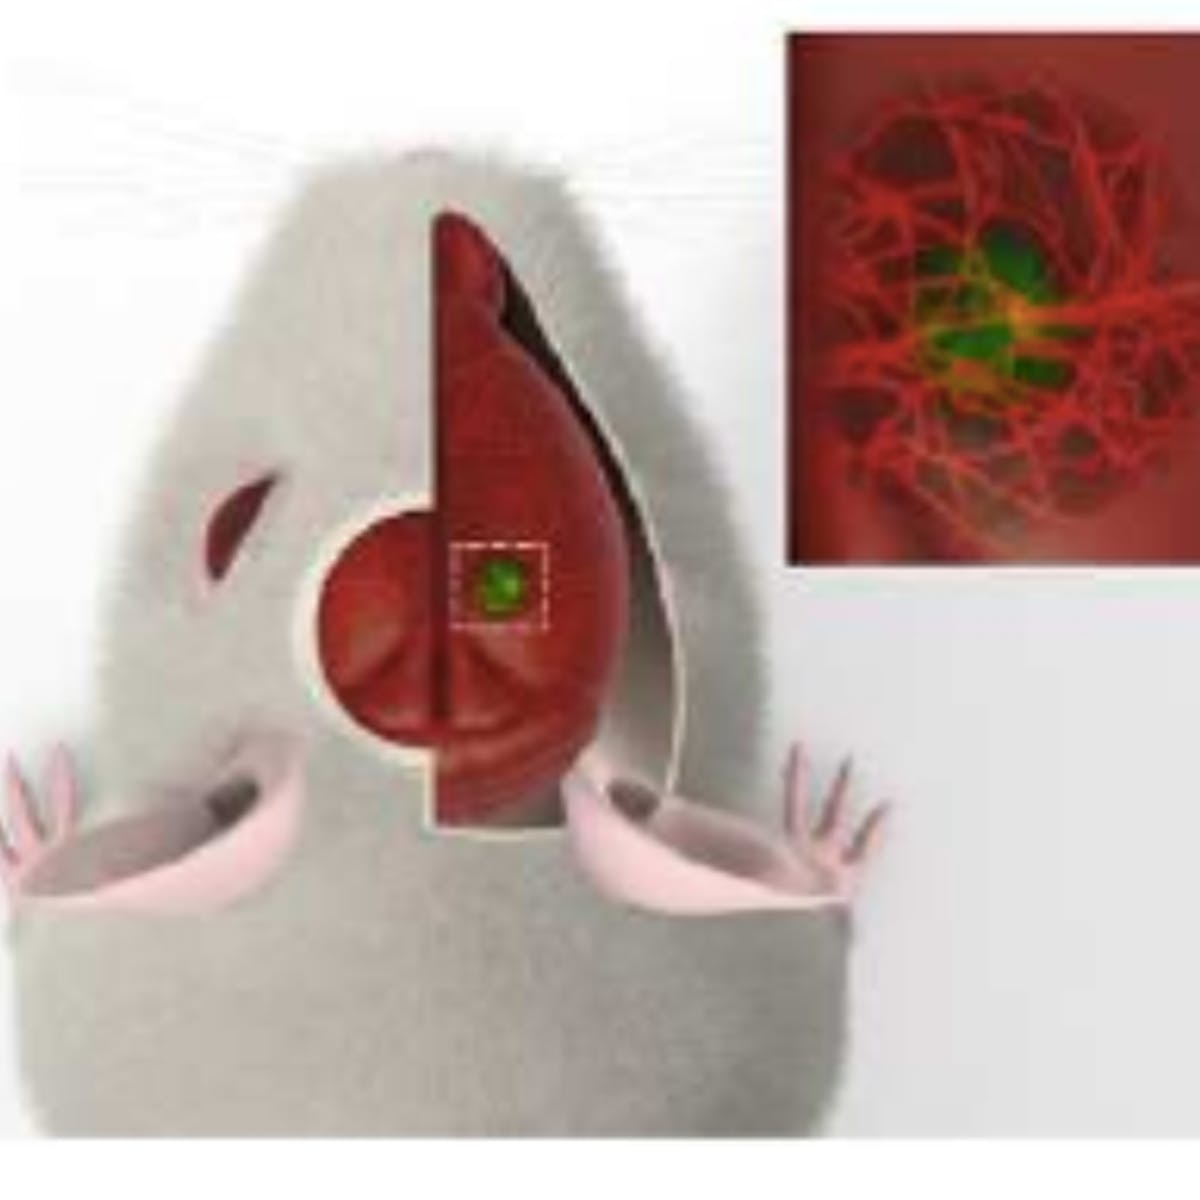 Human Mini-Brains Implanted Into Mice Didn't Just Survive, They Integrated